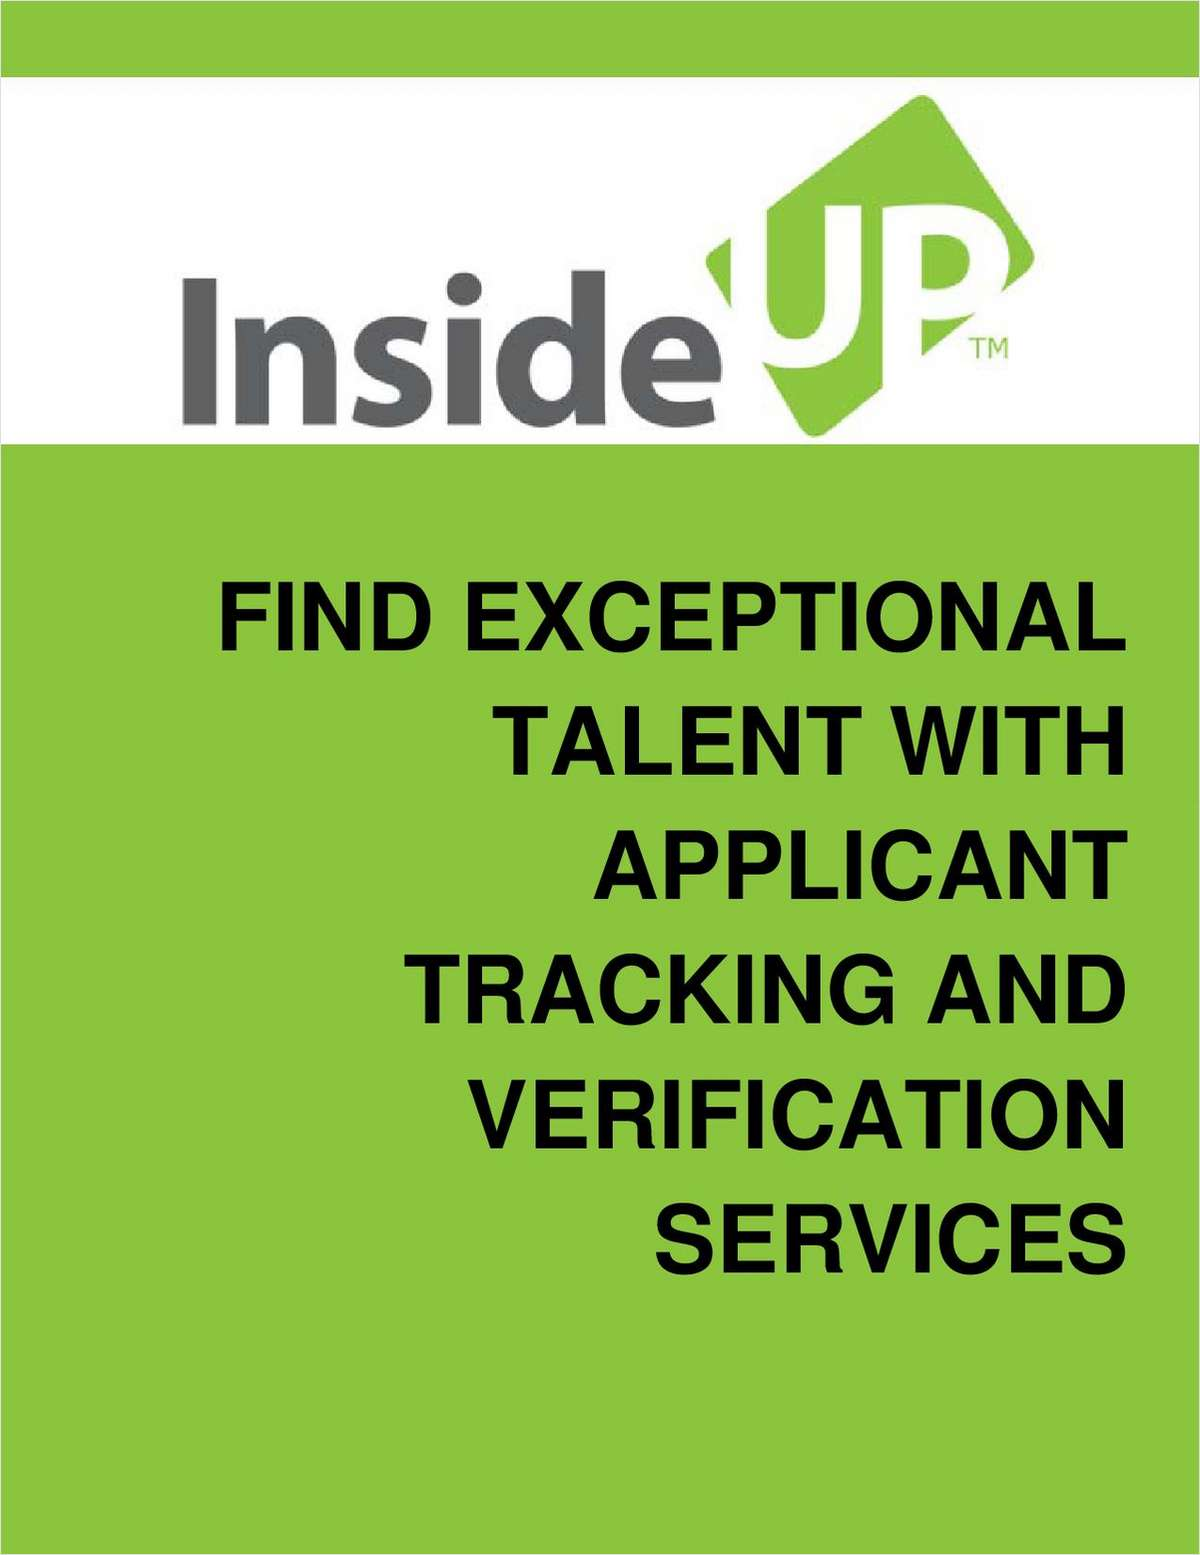 Finding Exceptional Talent With Applicant Tracking and Verification Systems